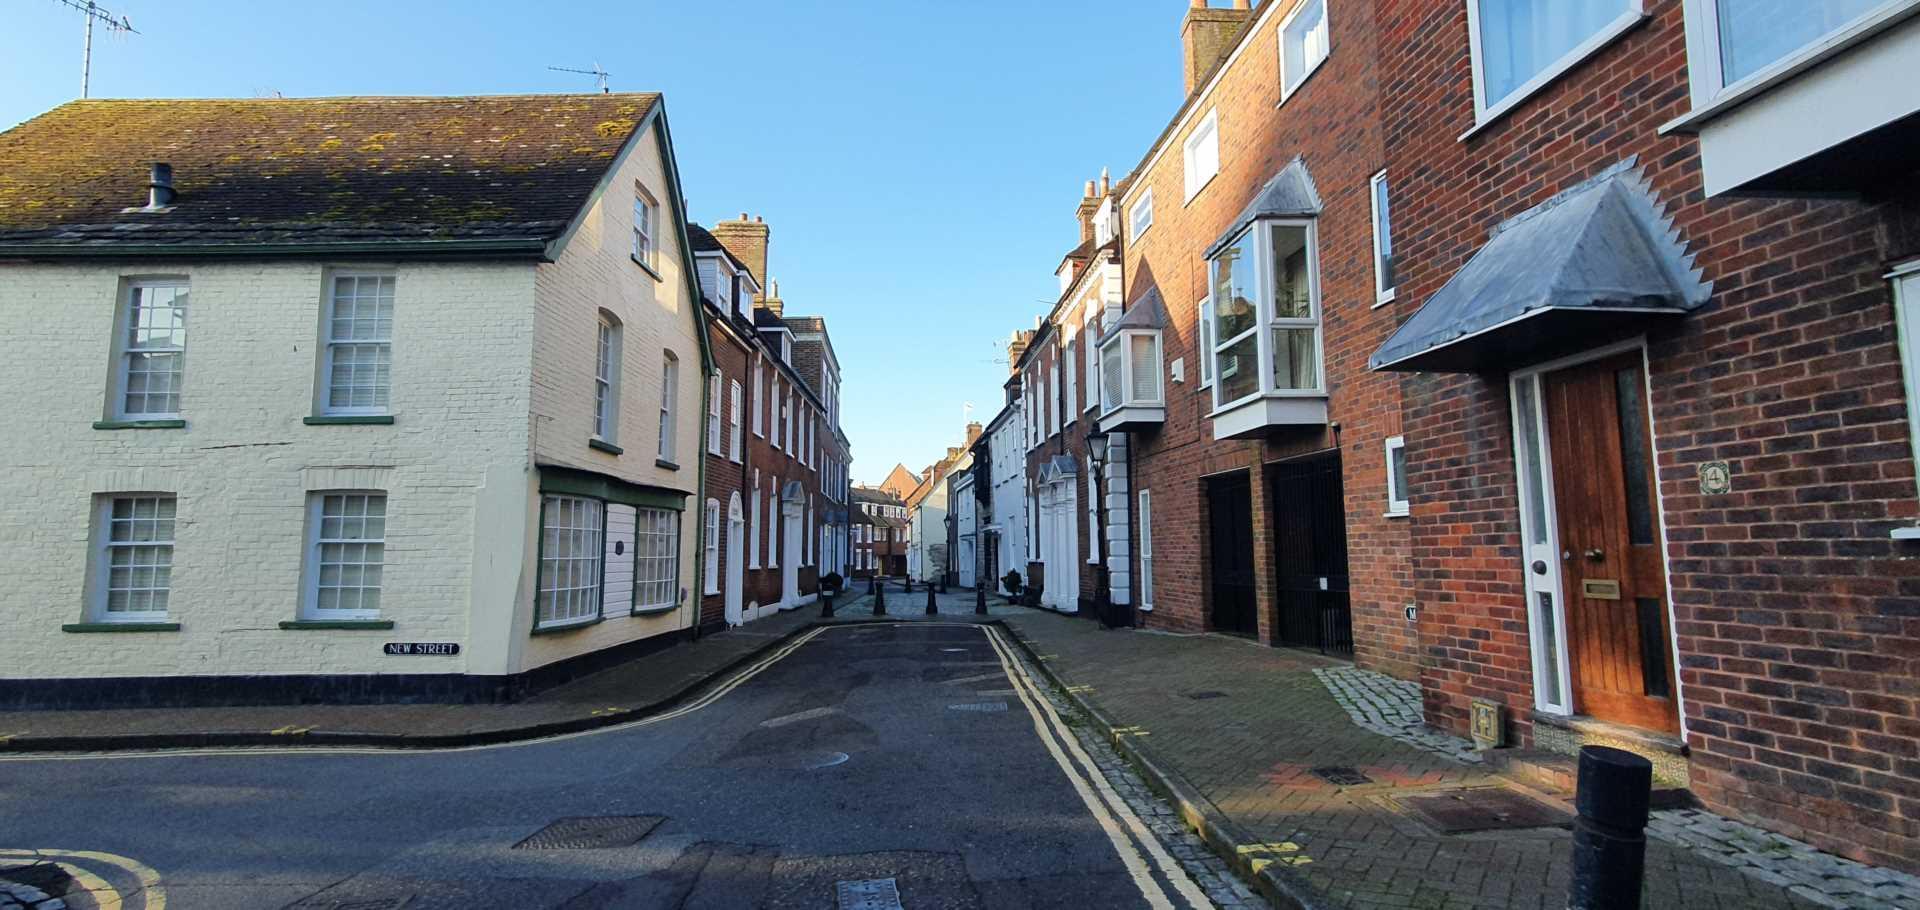 How to choose a buy-to-let property in Poole.